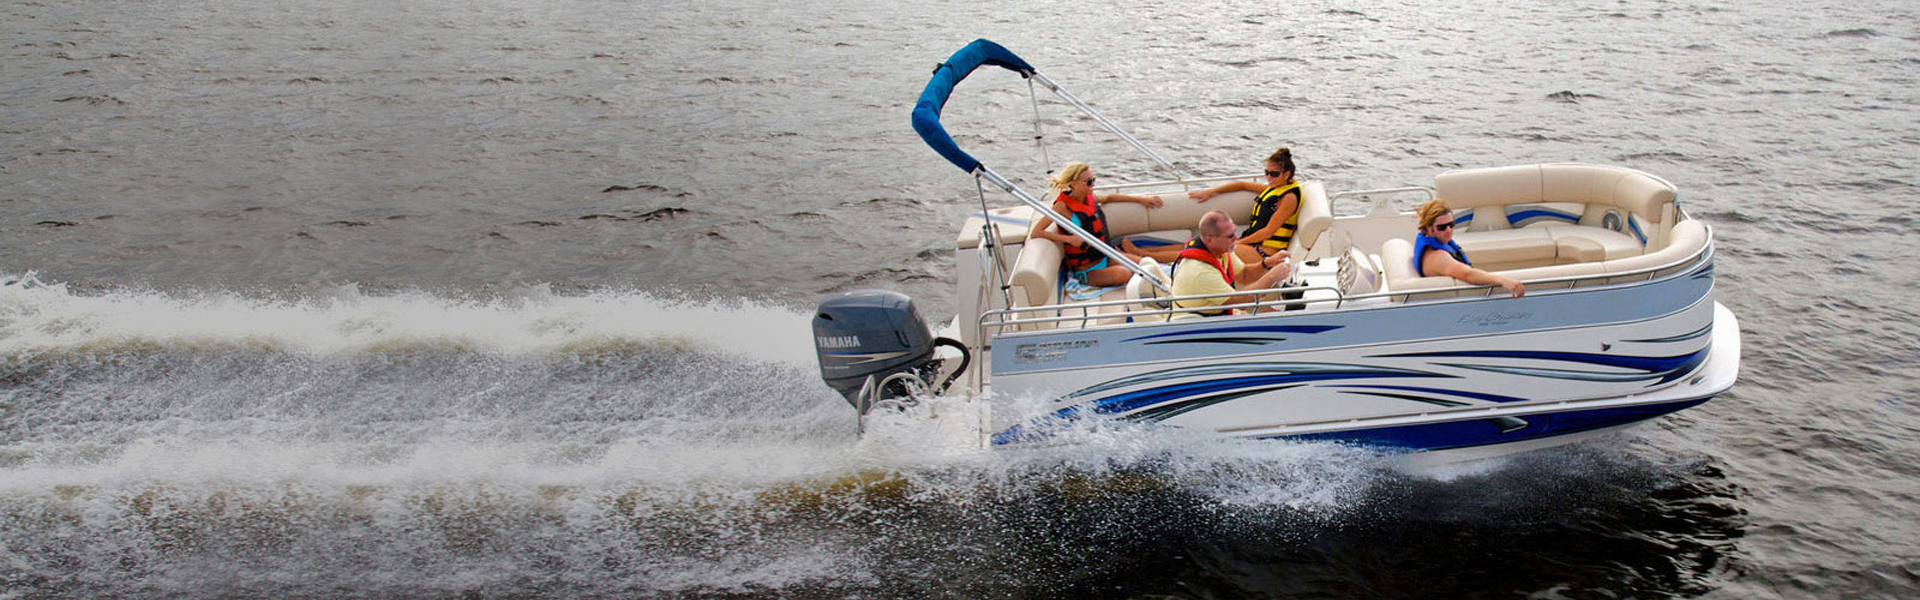 Fun Chaser deck boats for sale jacksonville FL